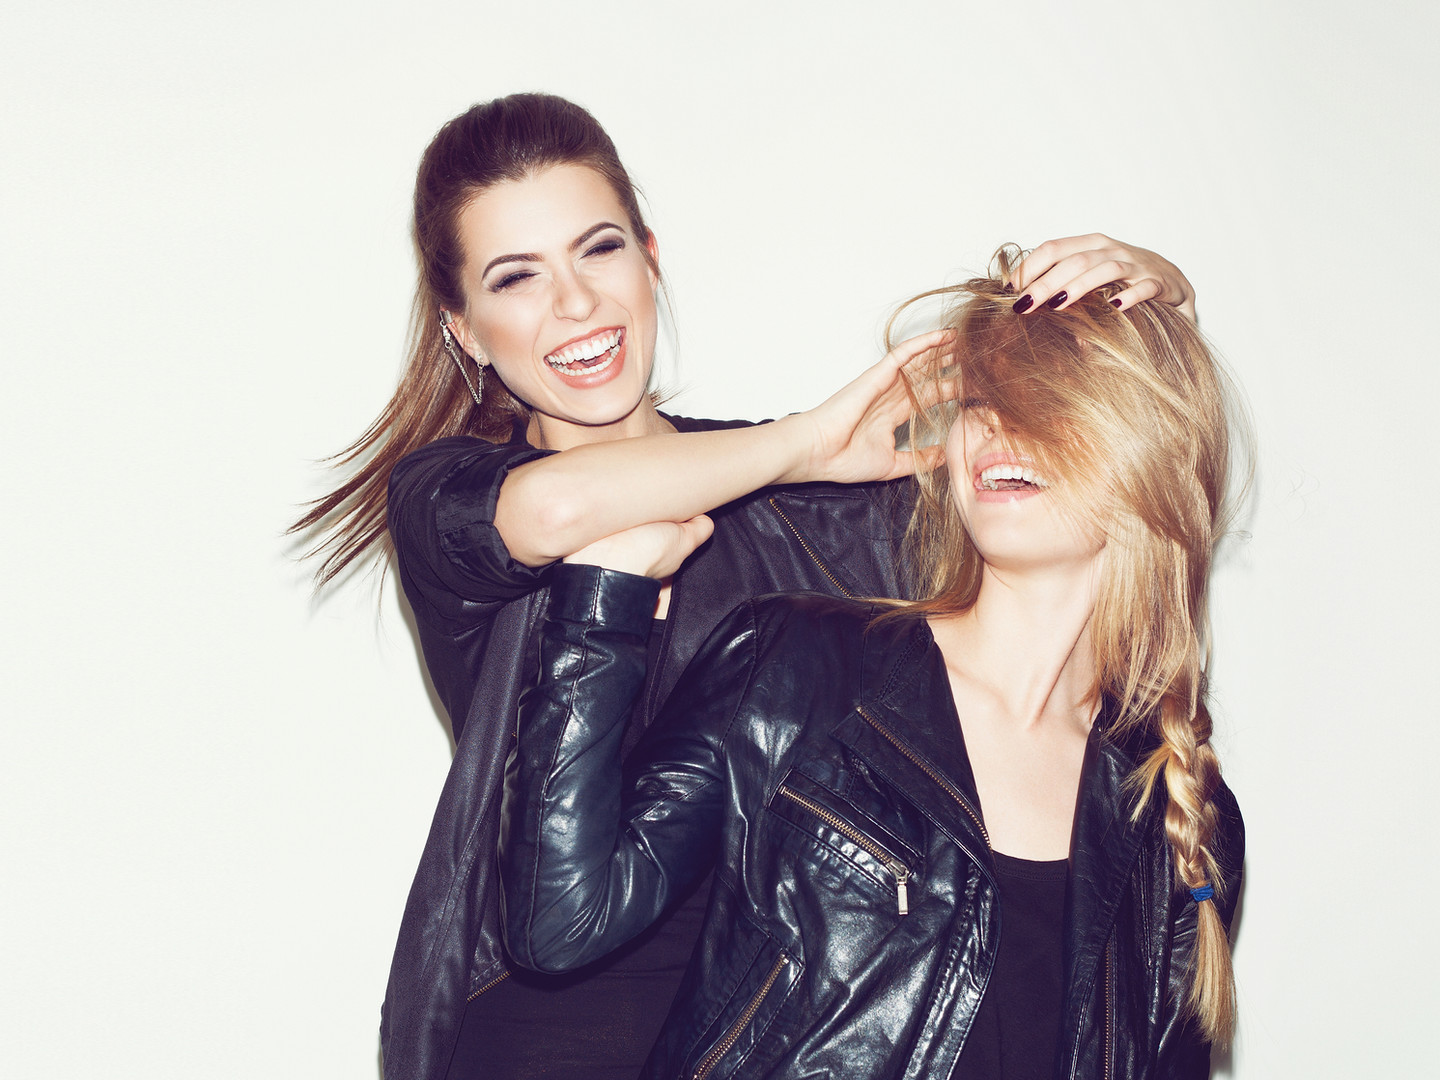 Silly Women in Leather